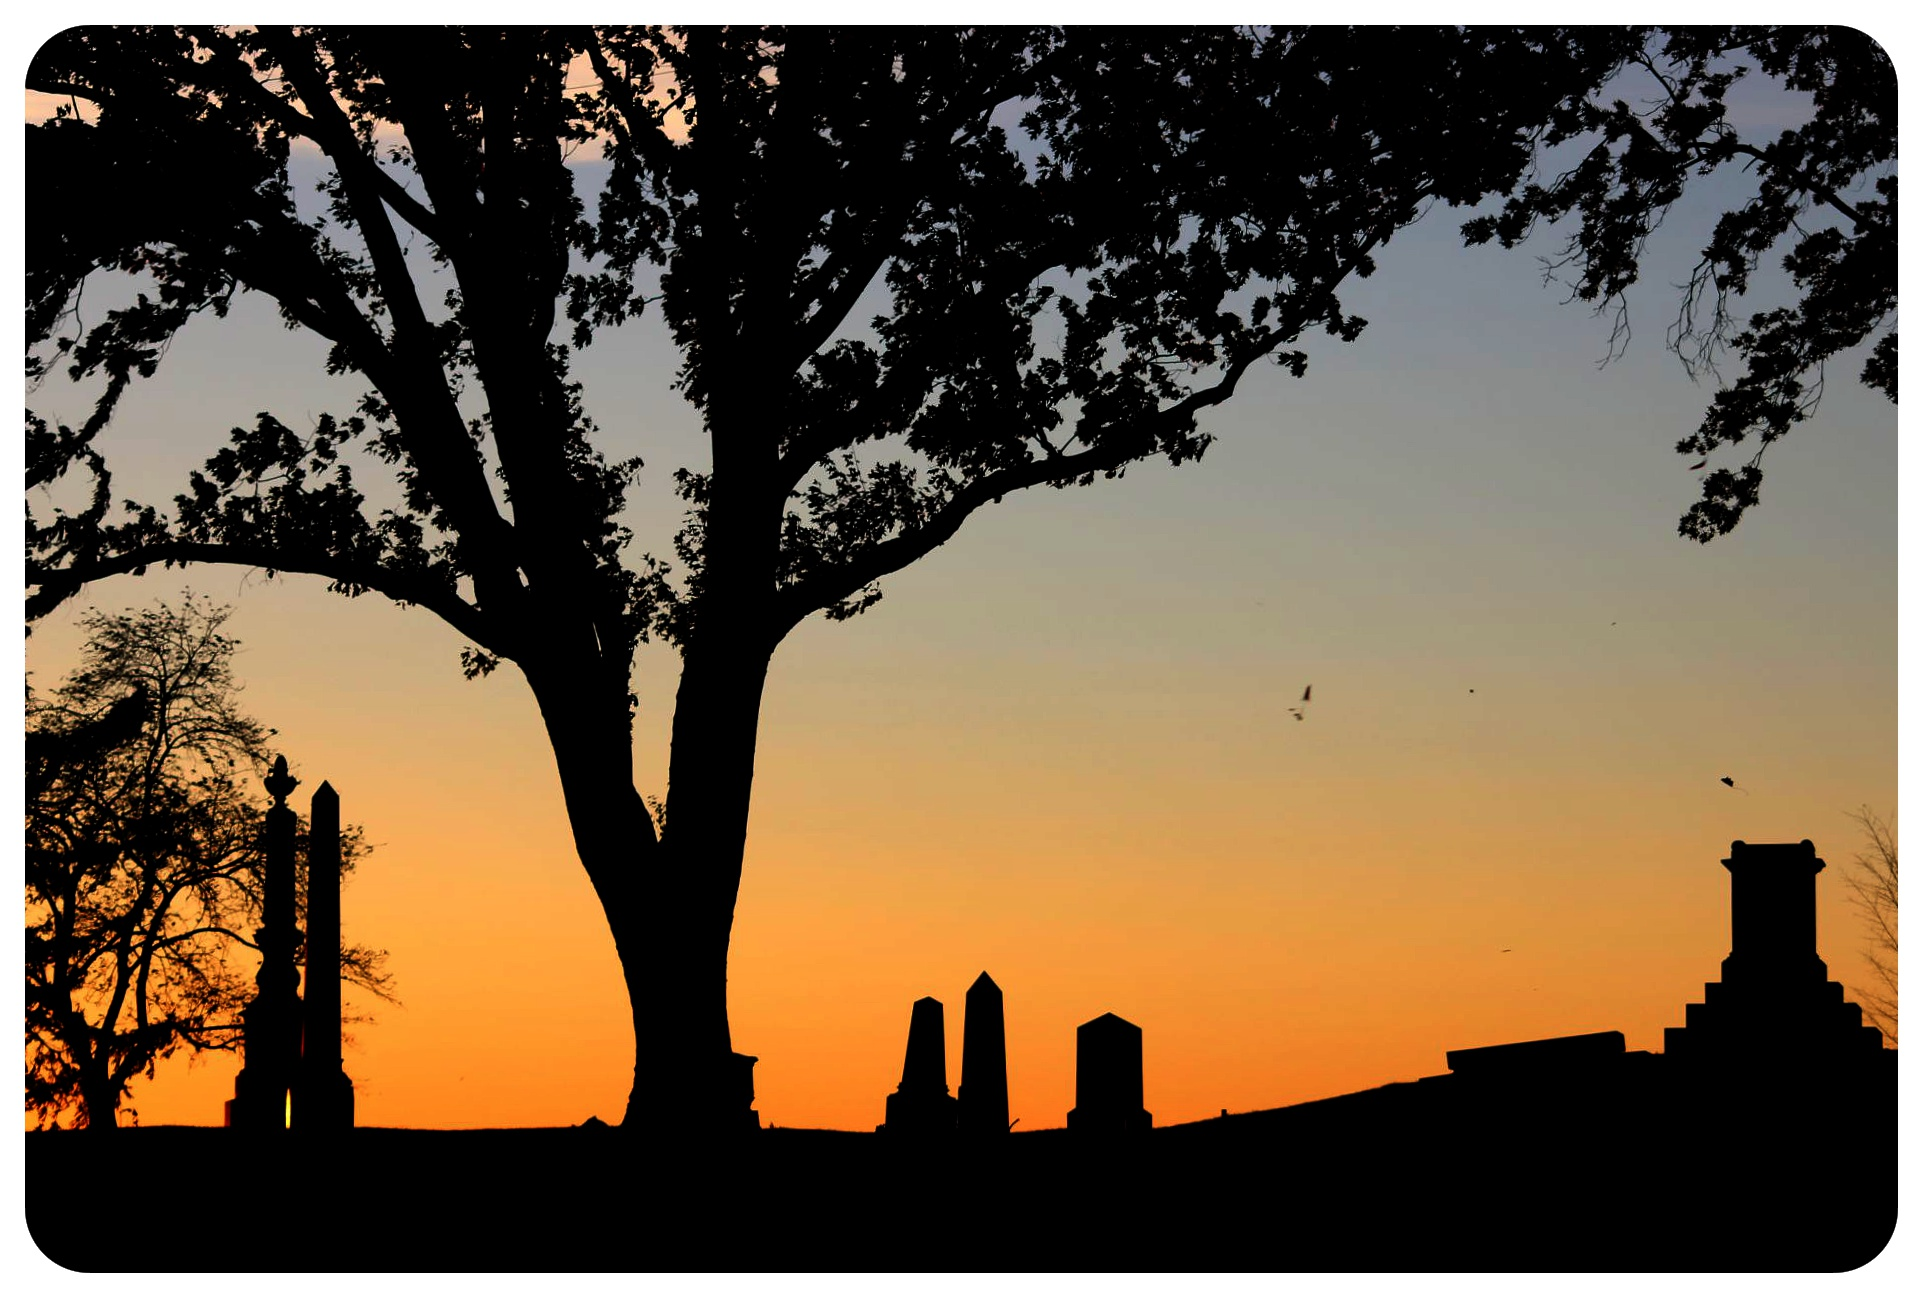 greenwood cemetery sunset obelisks